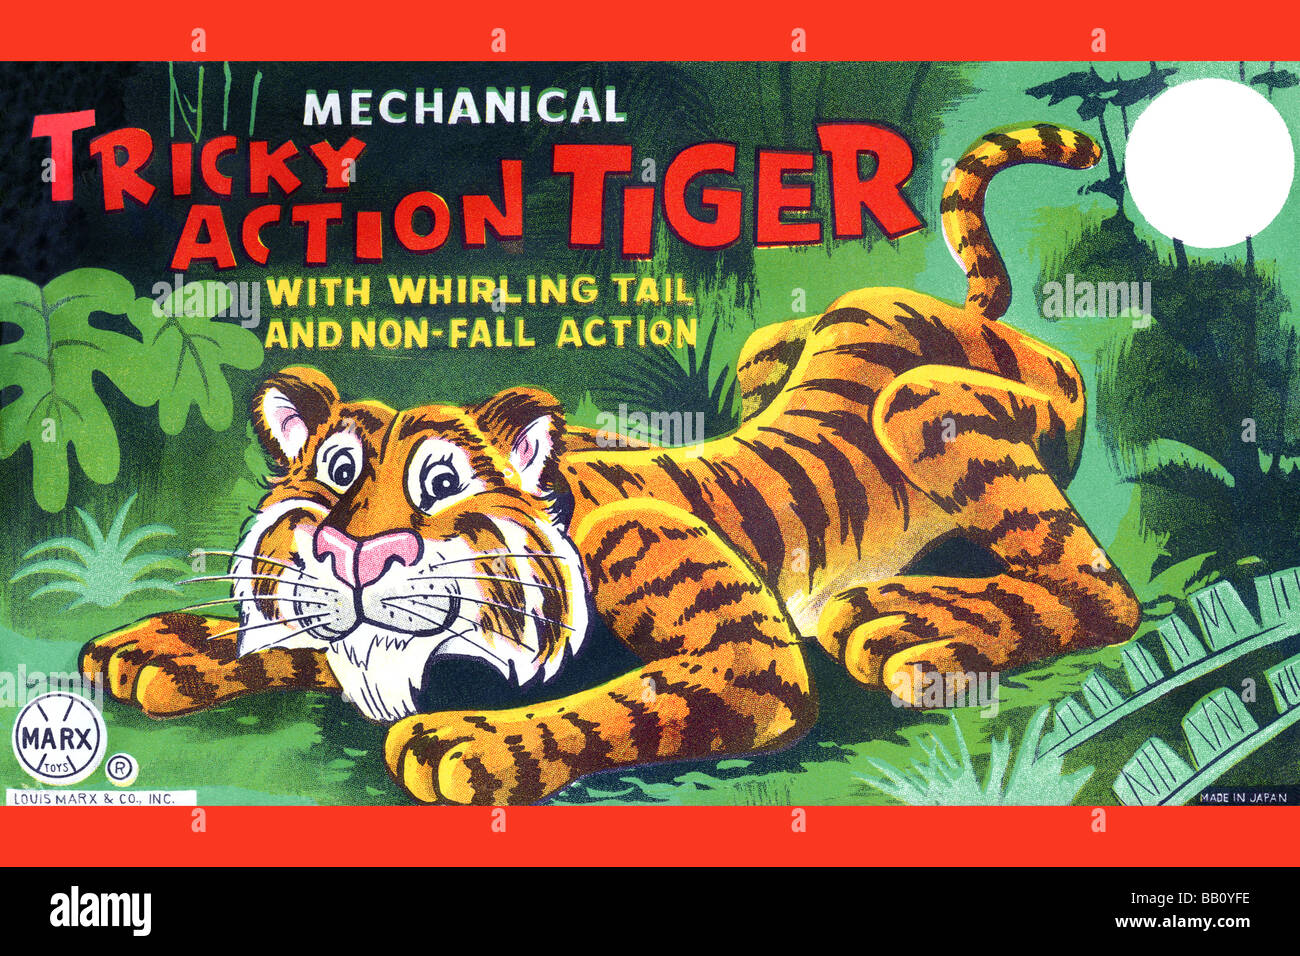 Tricky Action Tiger - Stock Image